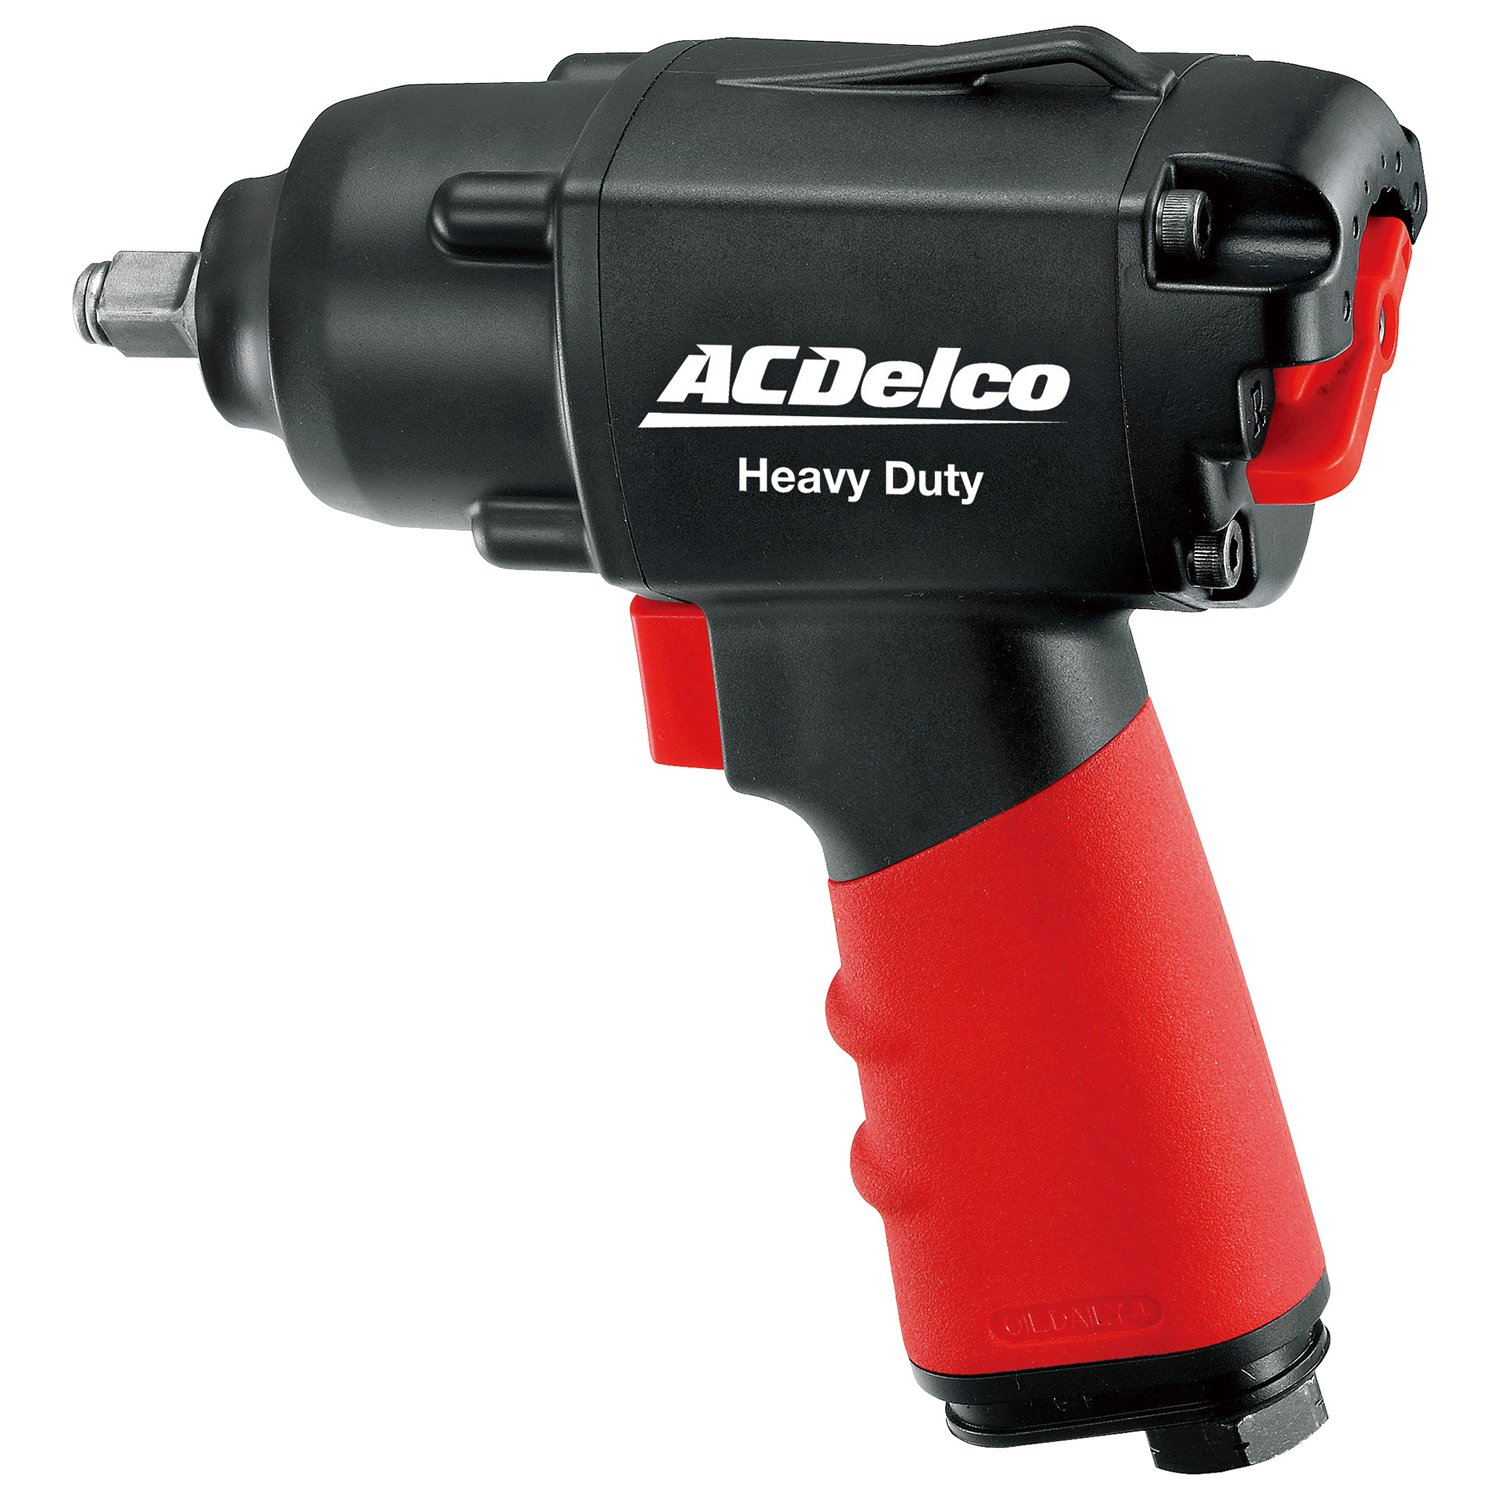 ACDelco BLOW-OUT OFFER! 3/8 Inch Heavy Duty Air Impact Wrench with Composite Body and Comfort Grip, ANI307 Durofix Inc.